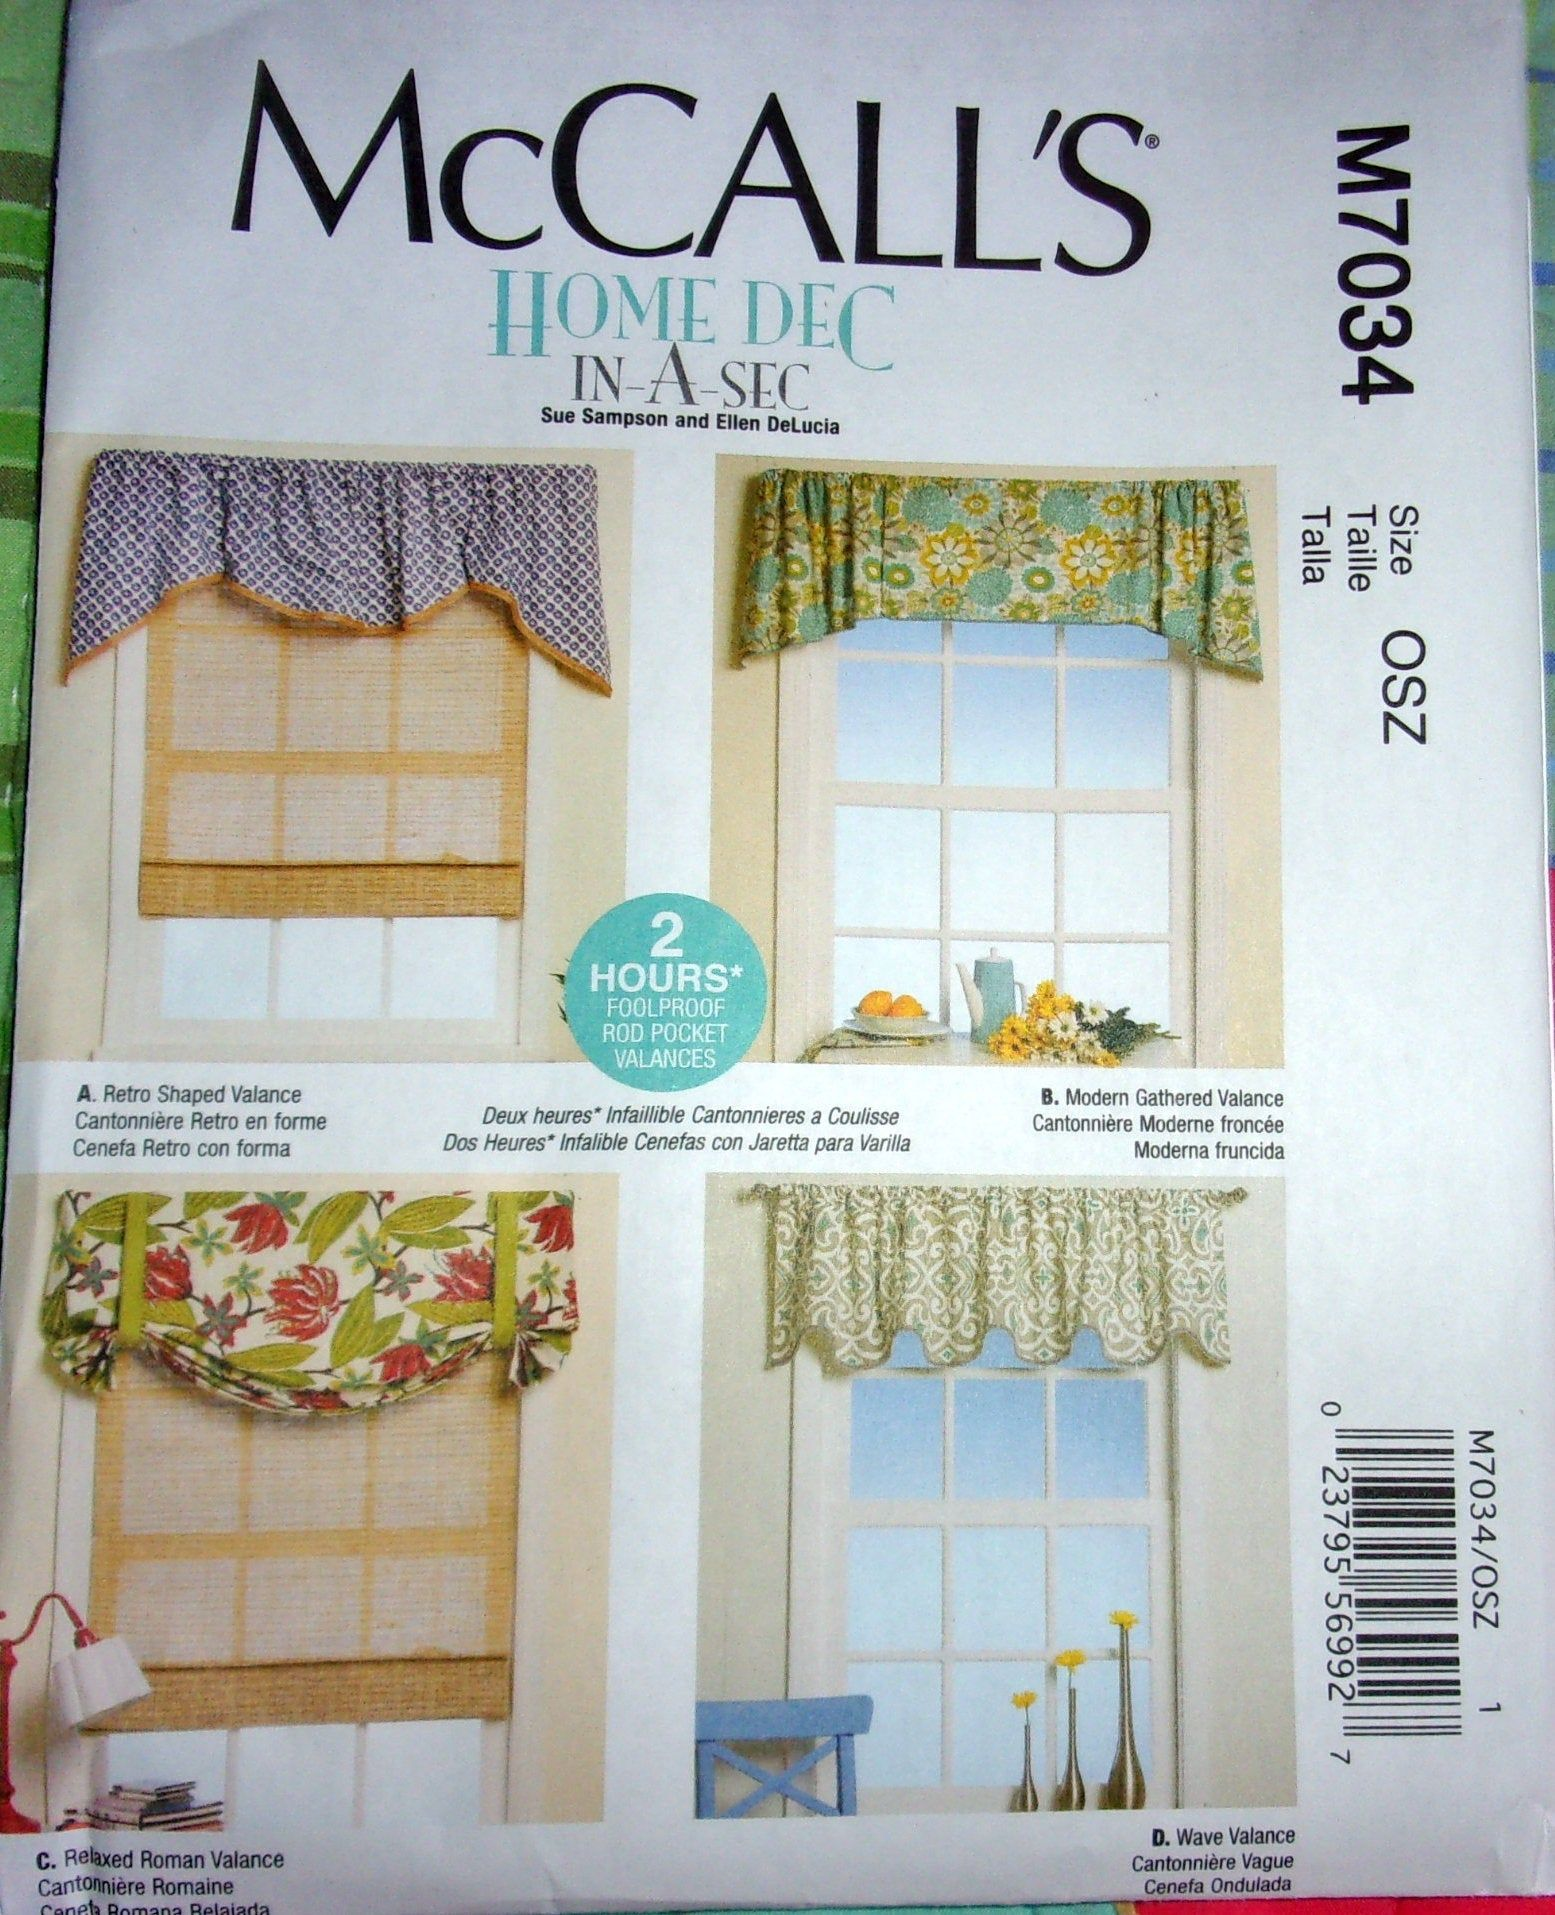 Mccall S 7034 Window Valances Easy Home Dec In A Sec Sewing Pattern 2 Hr Foolproof Rod Pocket Toppers Curtain Panels Fits 28 80 W Uncut Ff In 2020 Valance Patterns Valance Home Decor